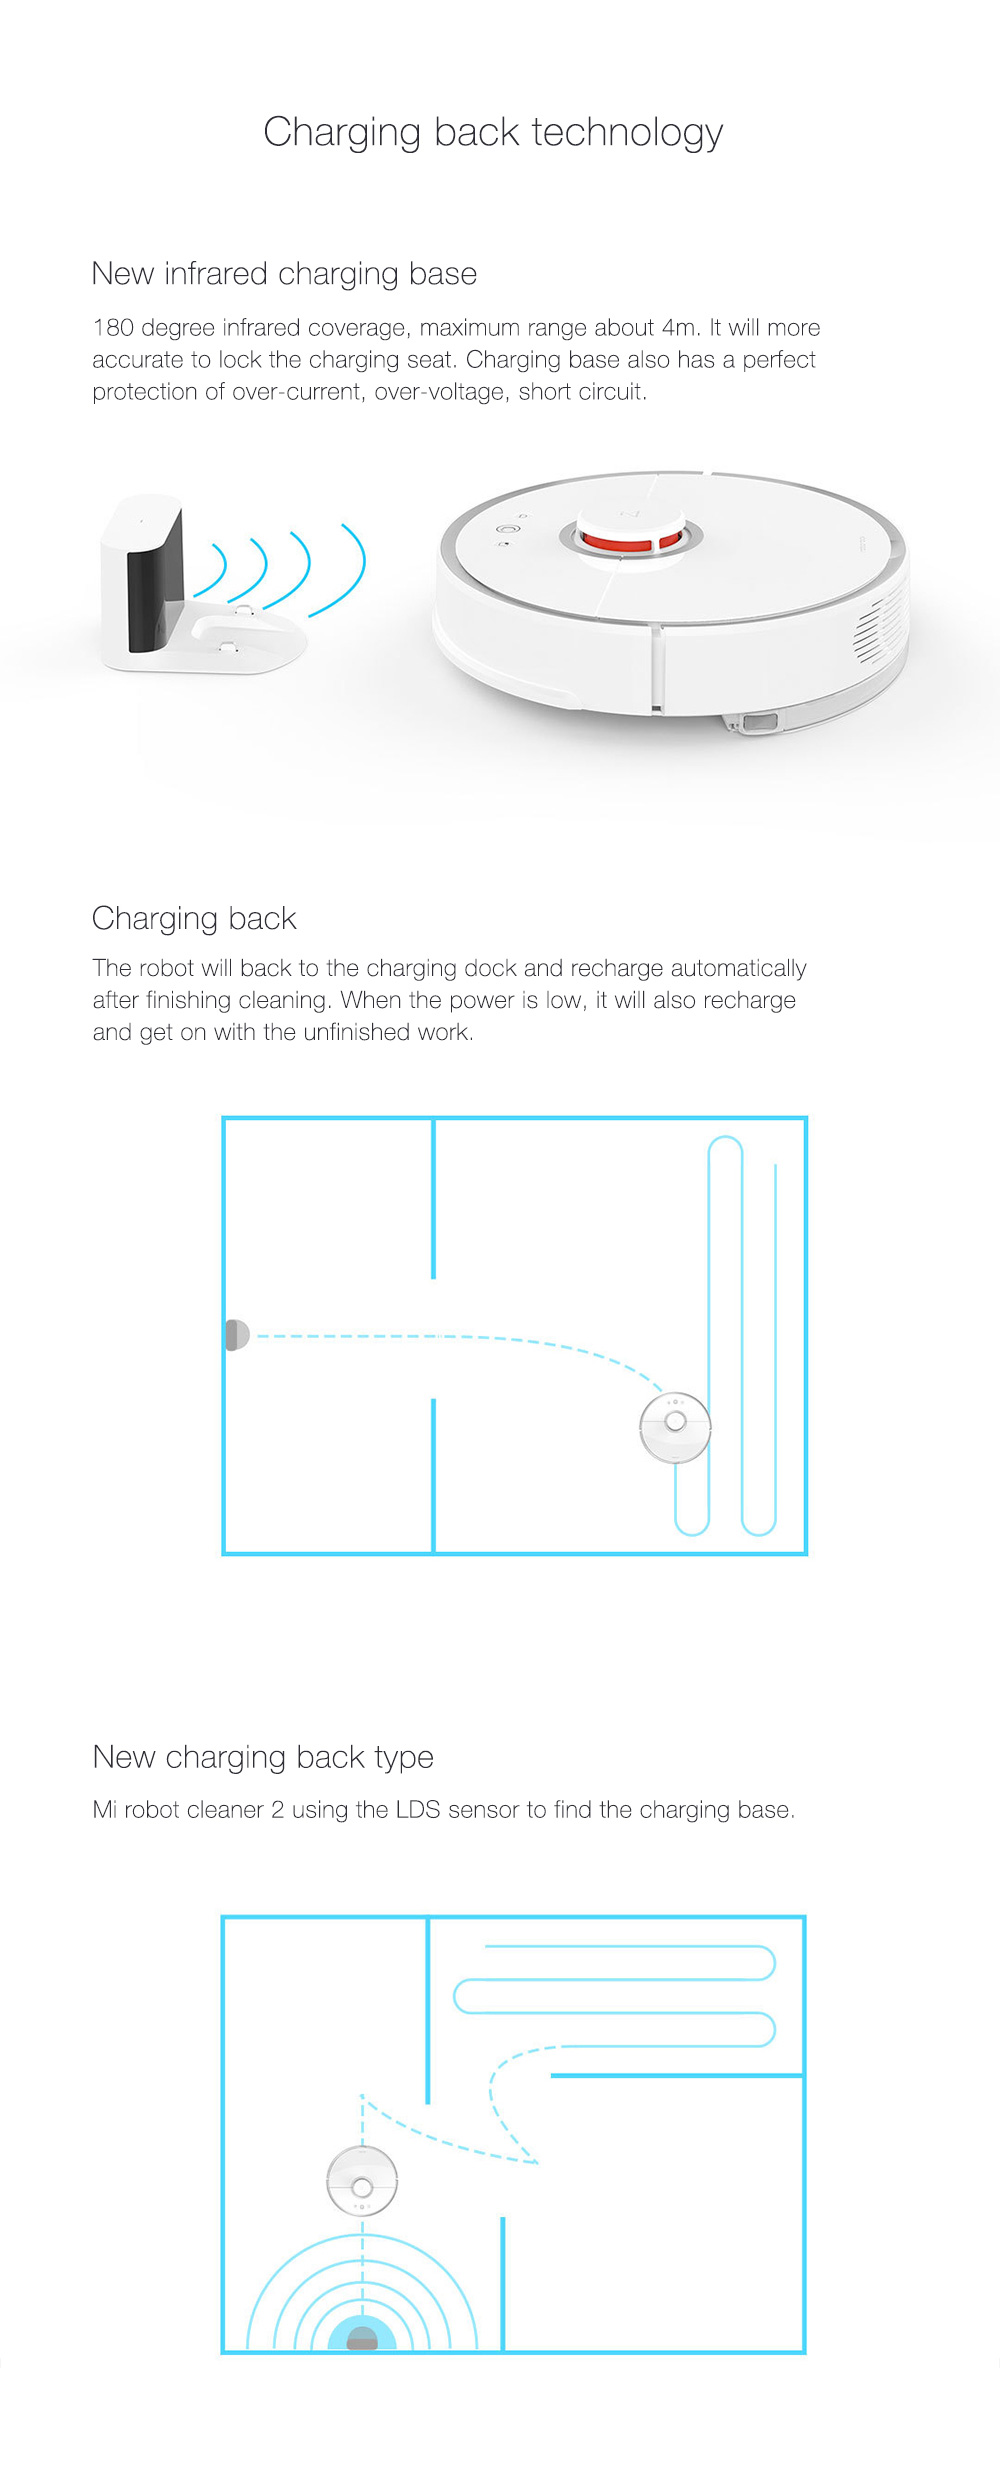 INTERNATIONAL VERSION XIAOMI MIJIA ROBOROCK VACUUM CLEANER 2 AUTOMATIC AREA CLEANING 2000PA SUCTION 2 IN 1 SWEEPING MOPPING FUNCTION 256393 23